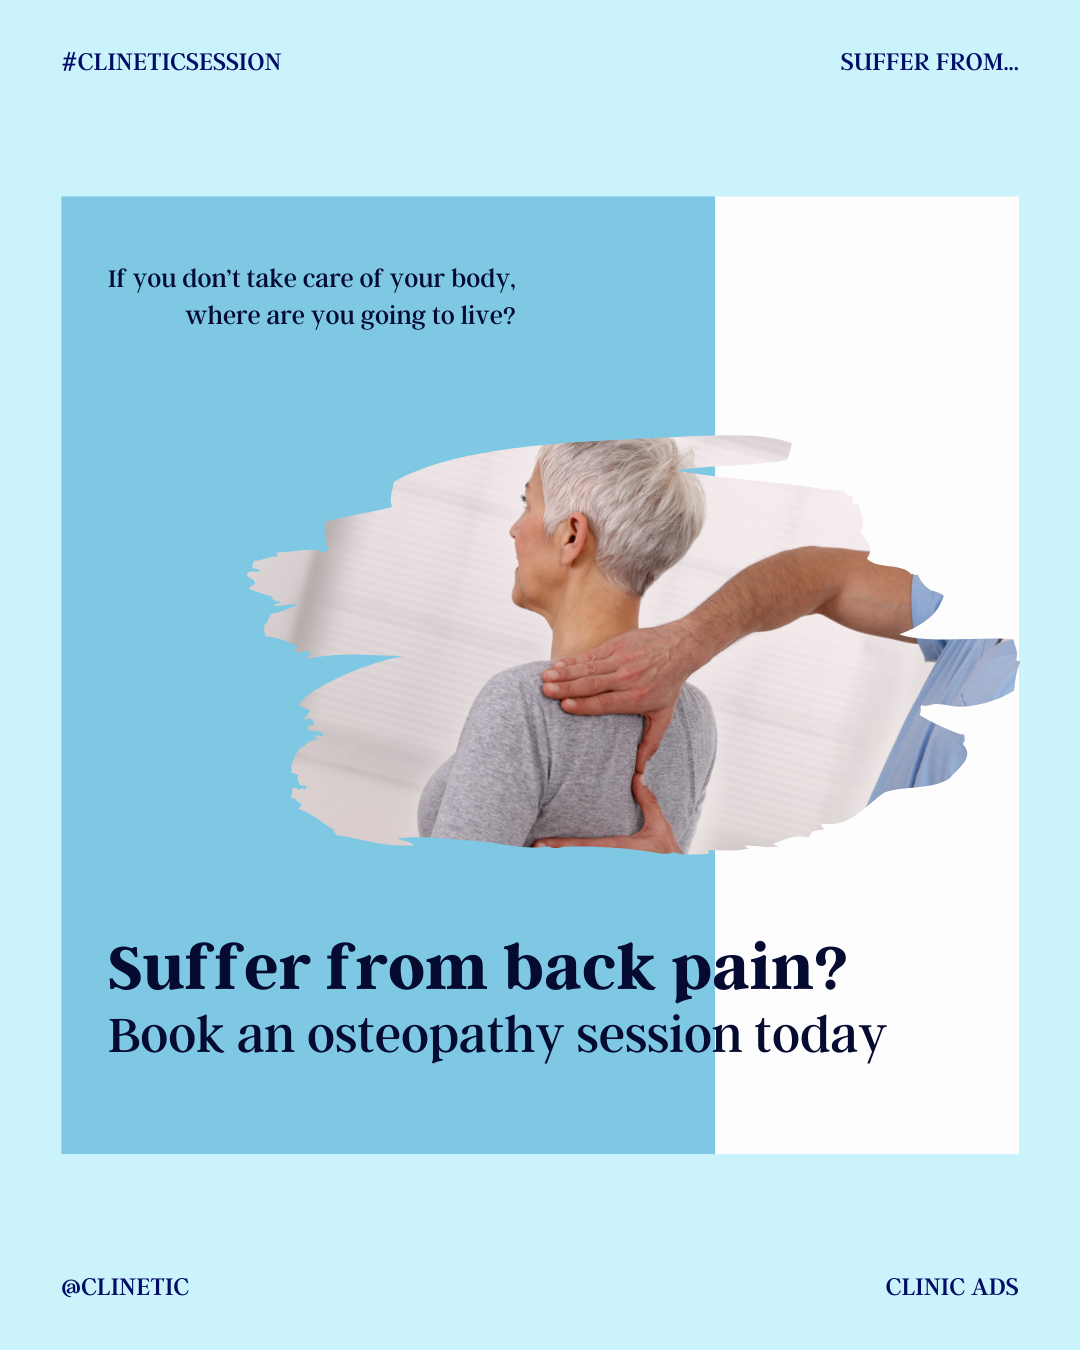 Suffer from back pain?!